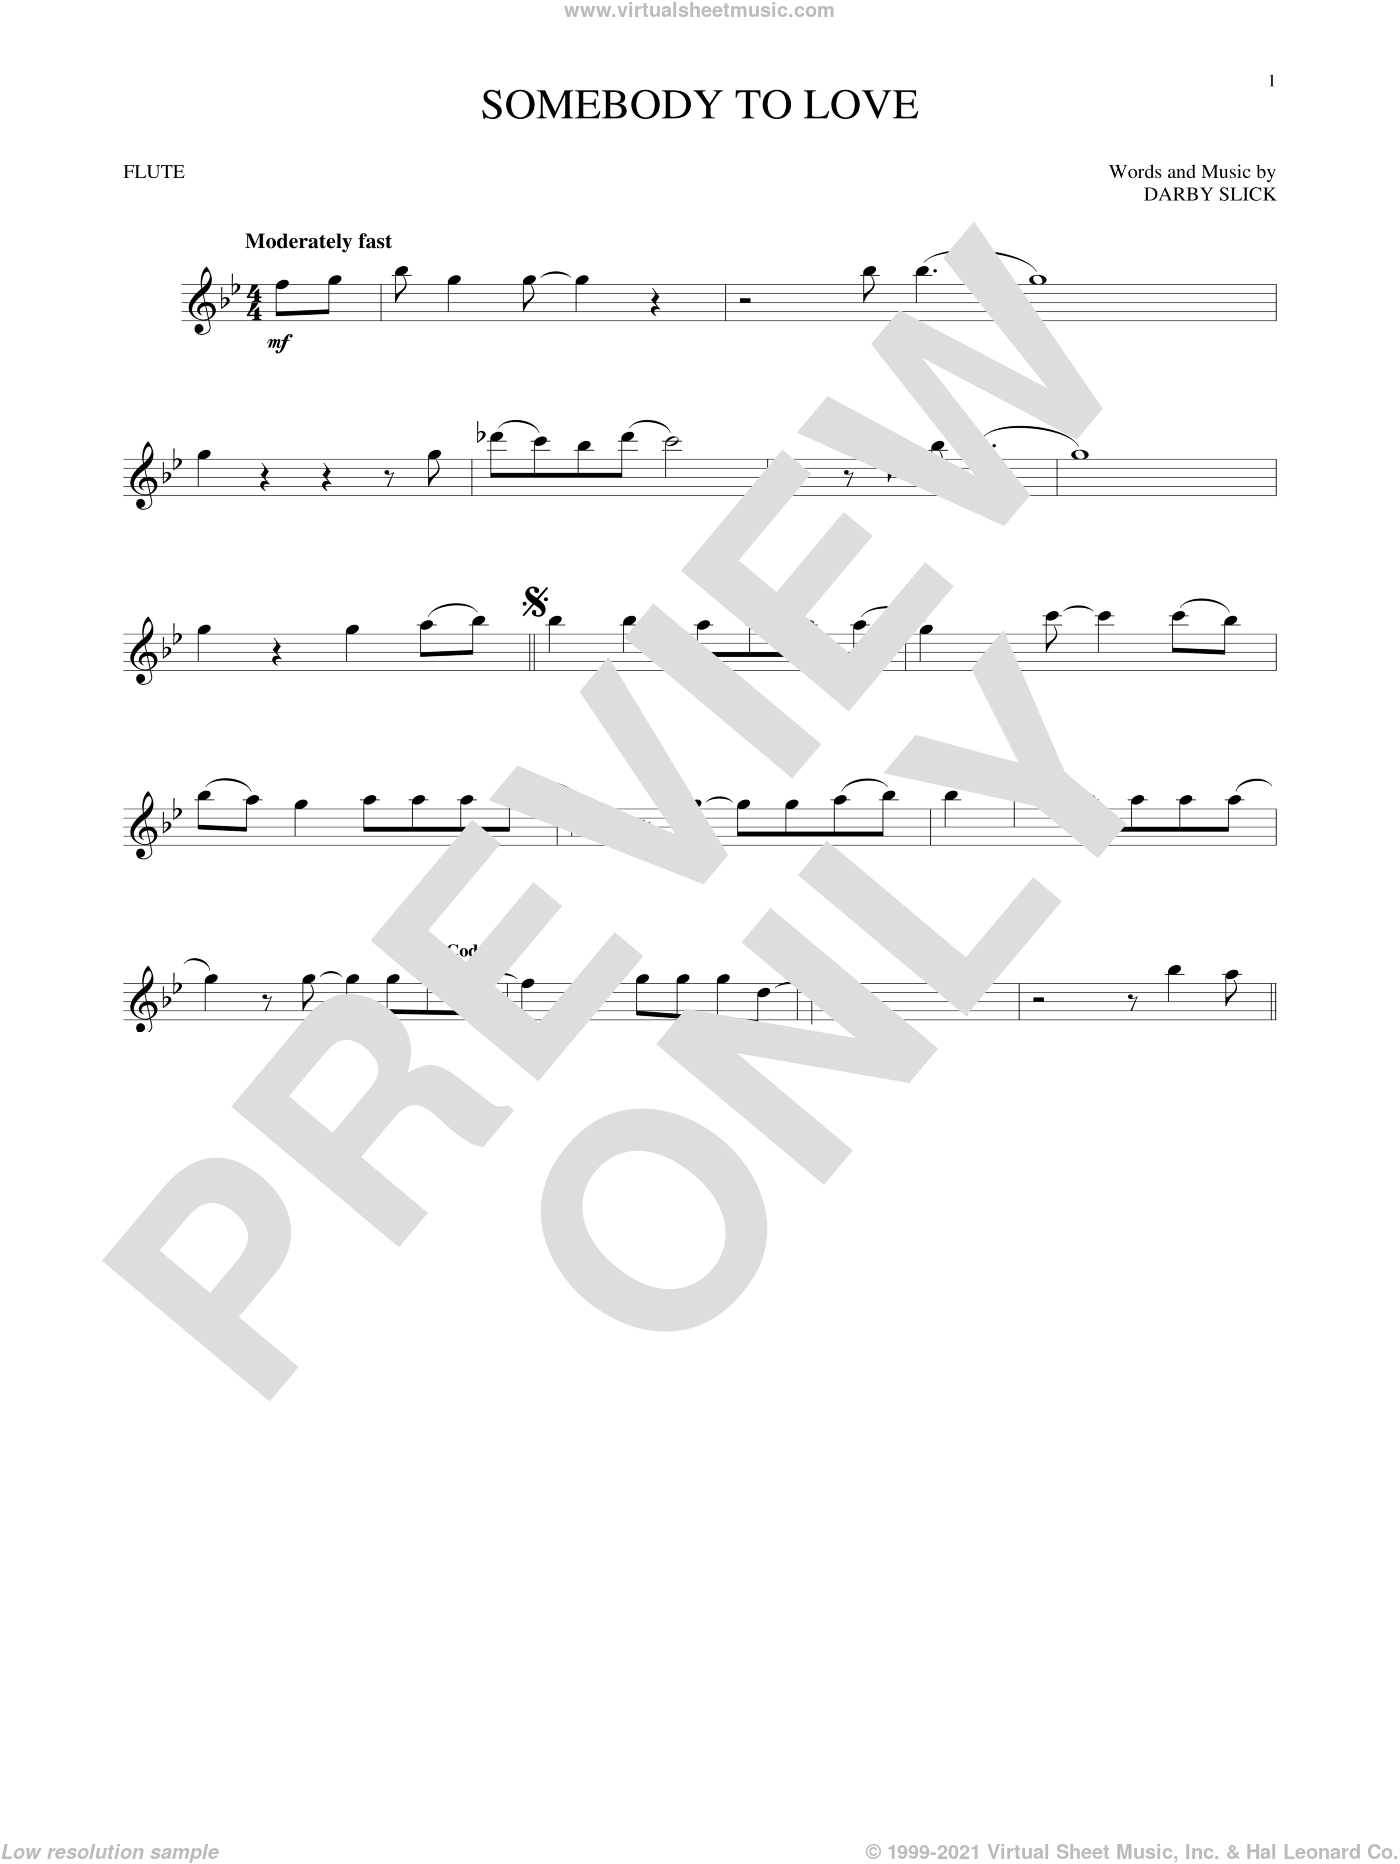 Somebody To Love sheet music for flute solo by Jefferson Airplane and Darby Slick, intermediate skill level